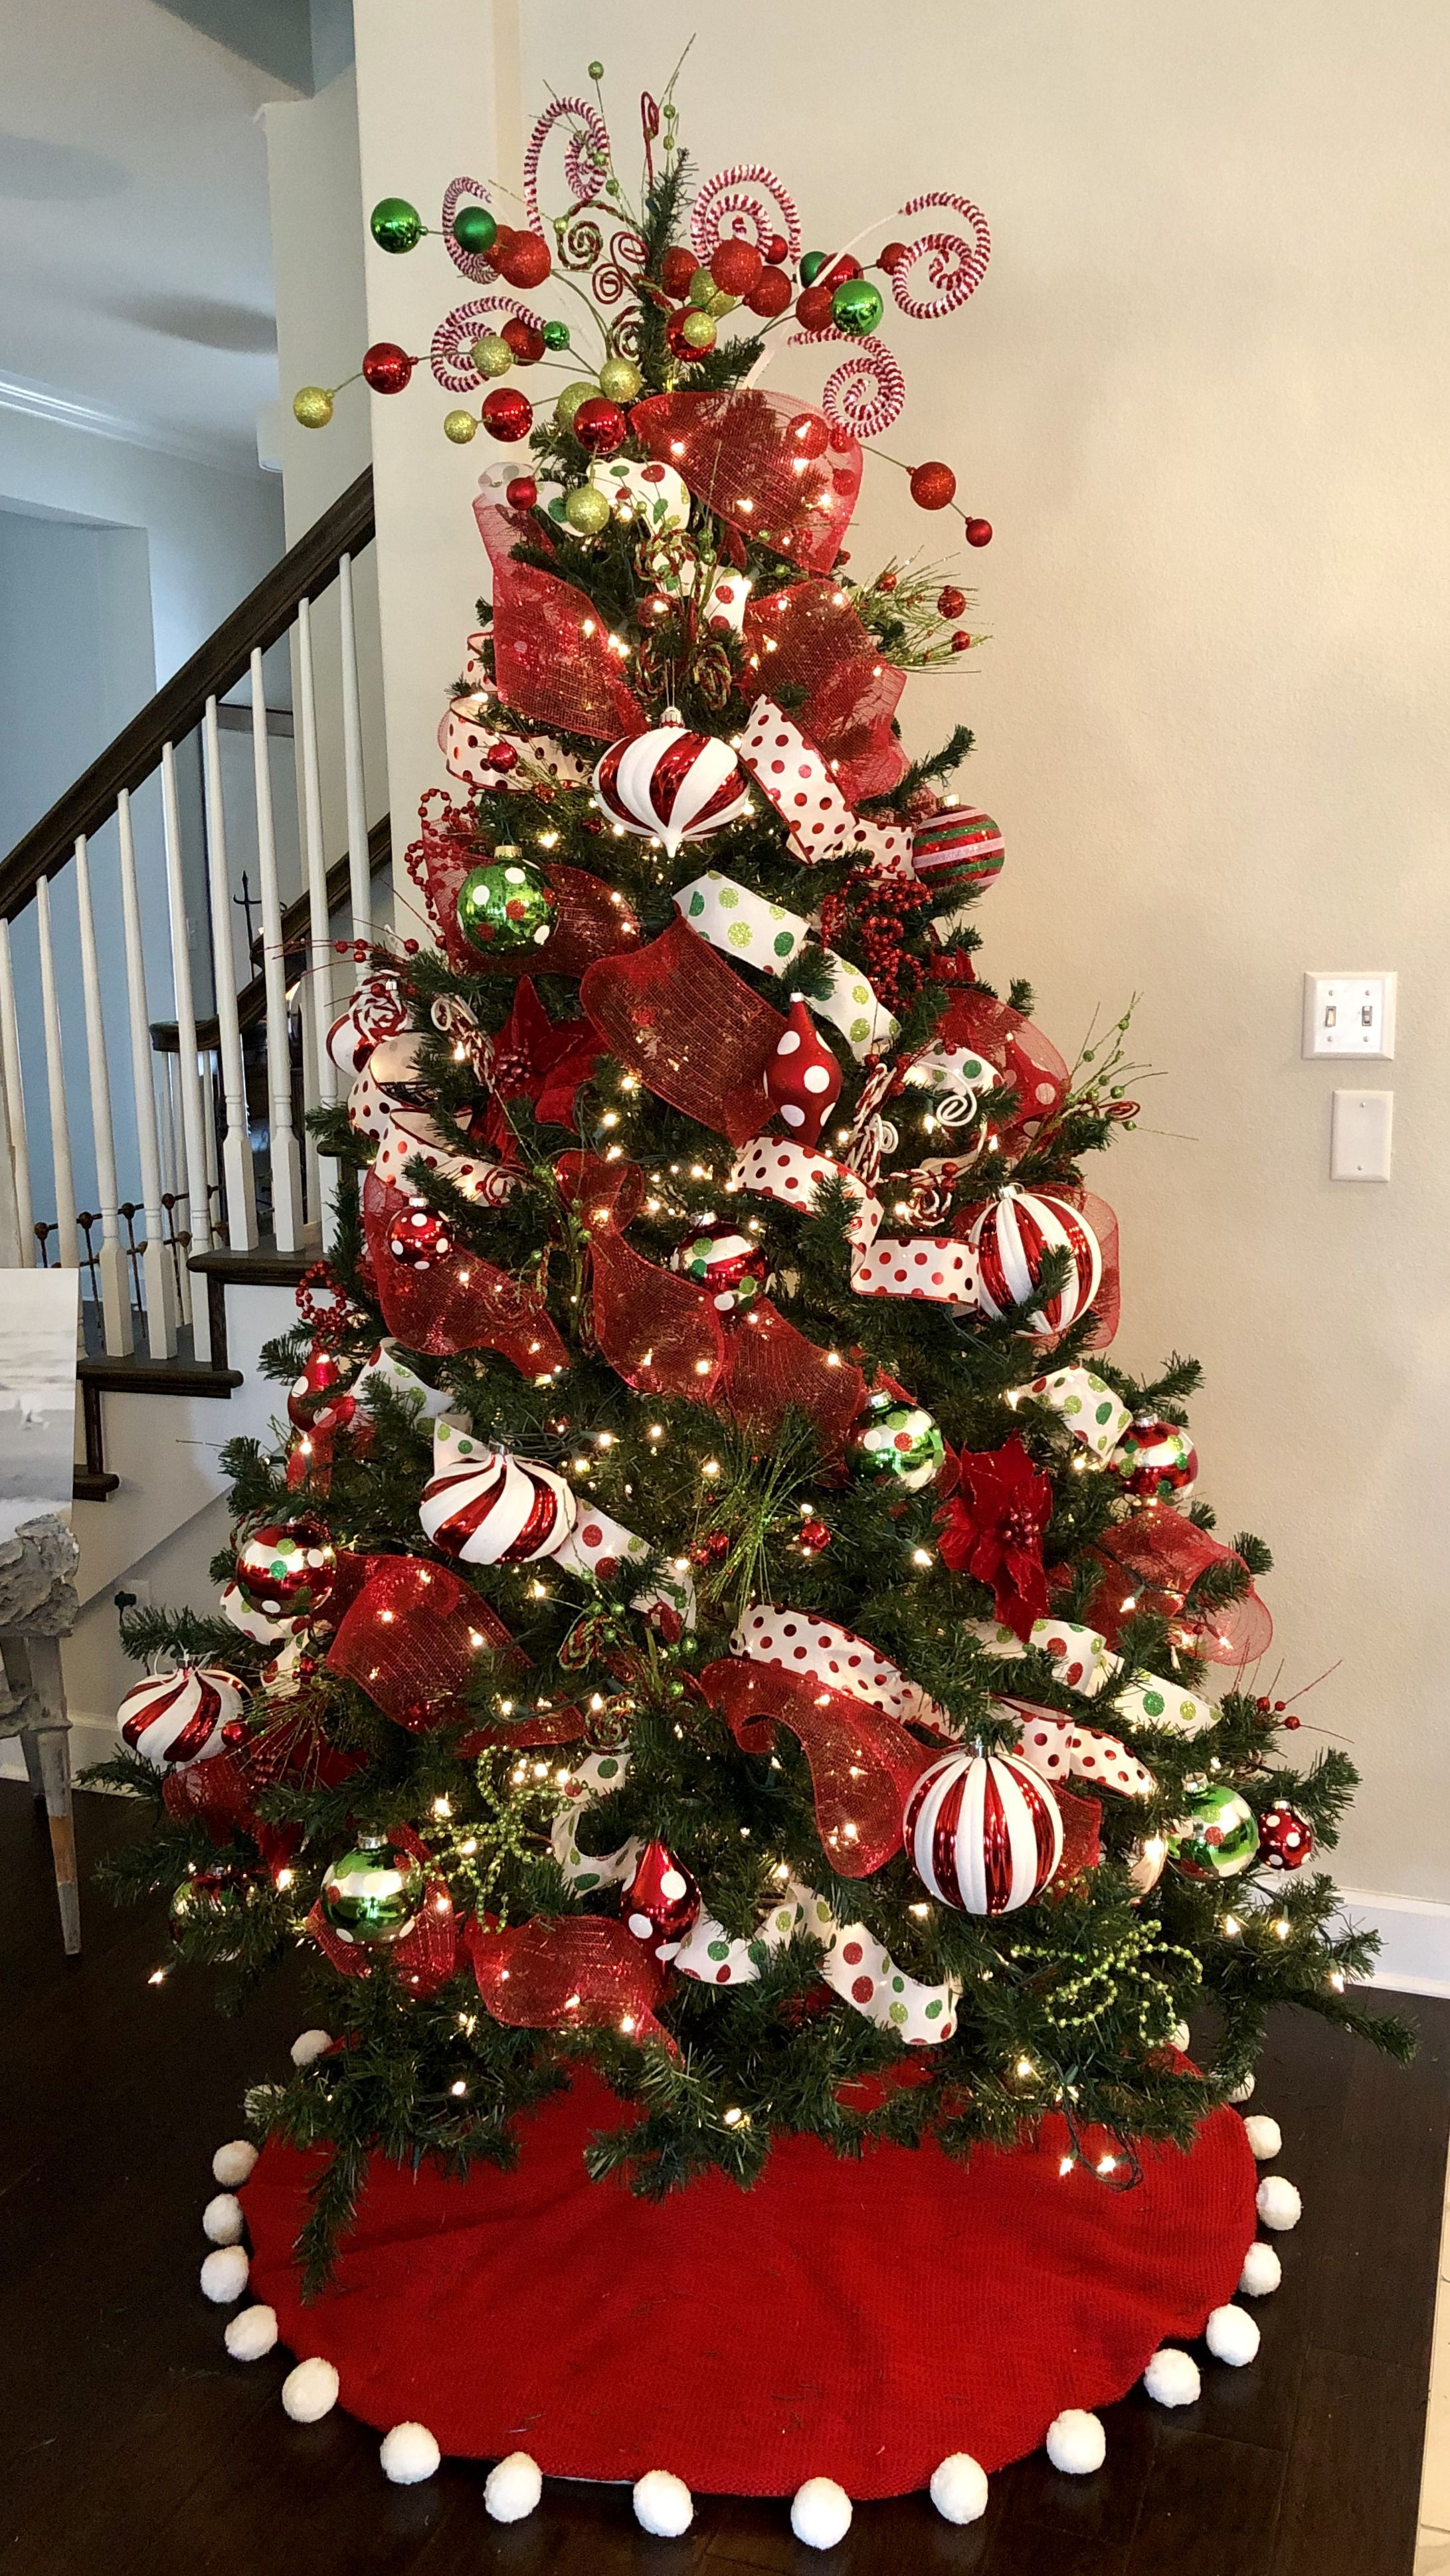 Holiday Tree 2018 Red Mesh Ribbon Polka Dot Wired Ribbon In Green And Red And Ribbon On Christmas Tree Christmas Tree Inspiration Christmas Tree Decorations